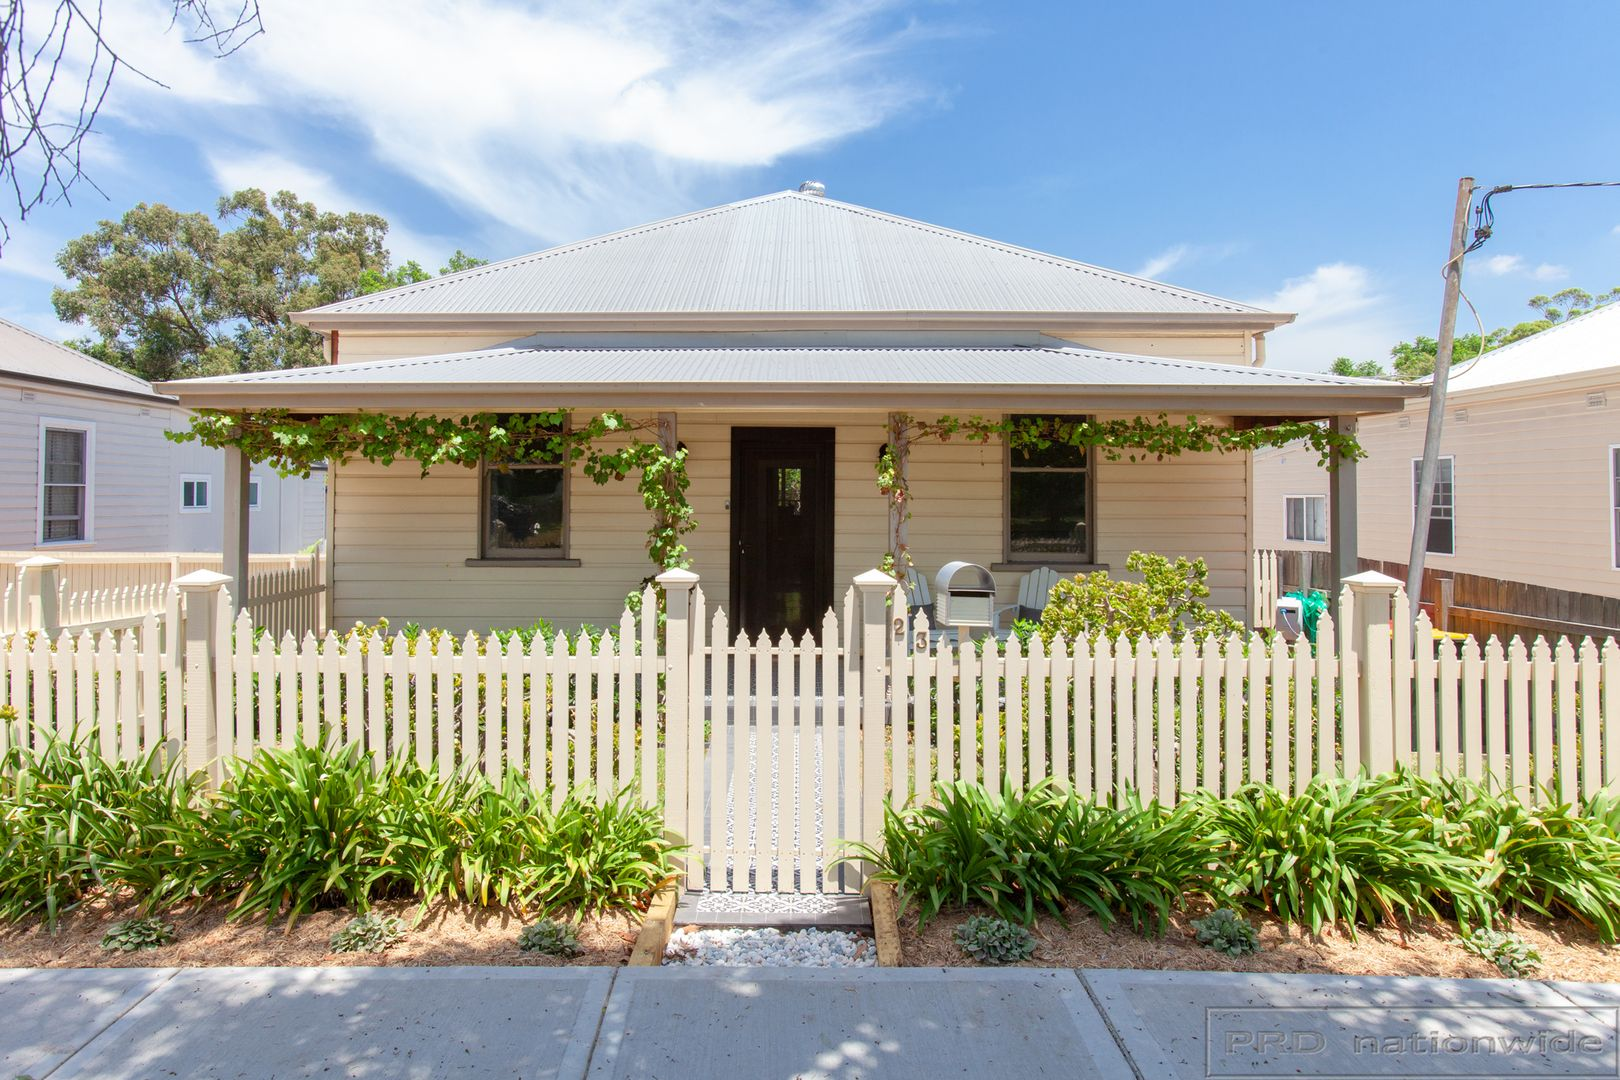 23 Lindesay Street, East Maitland NSW 2323 - House For Sale   Domain